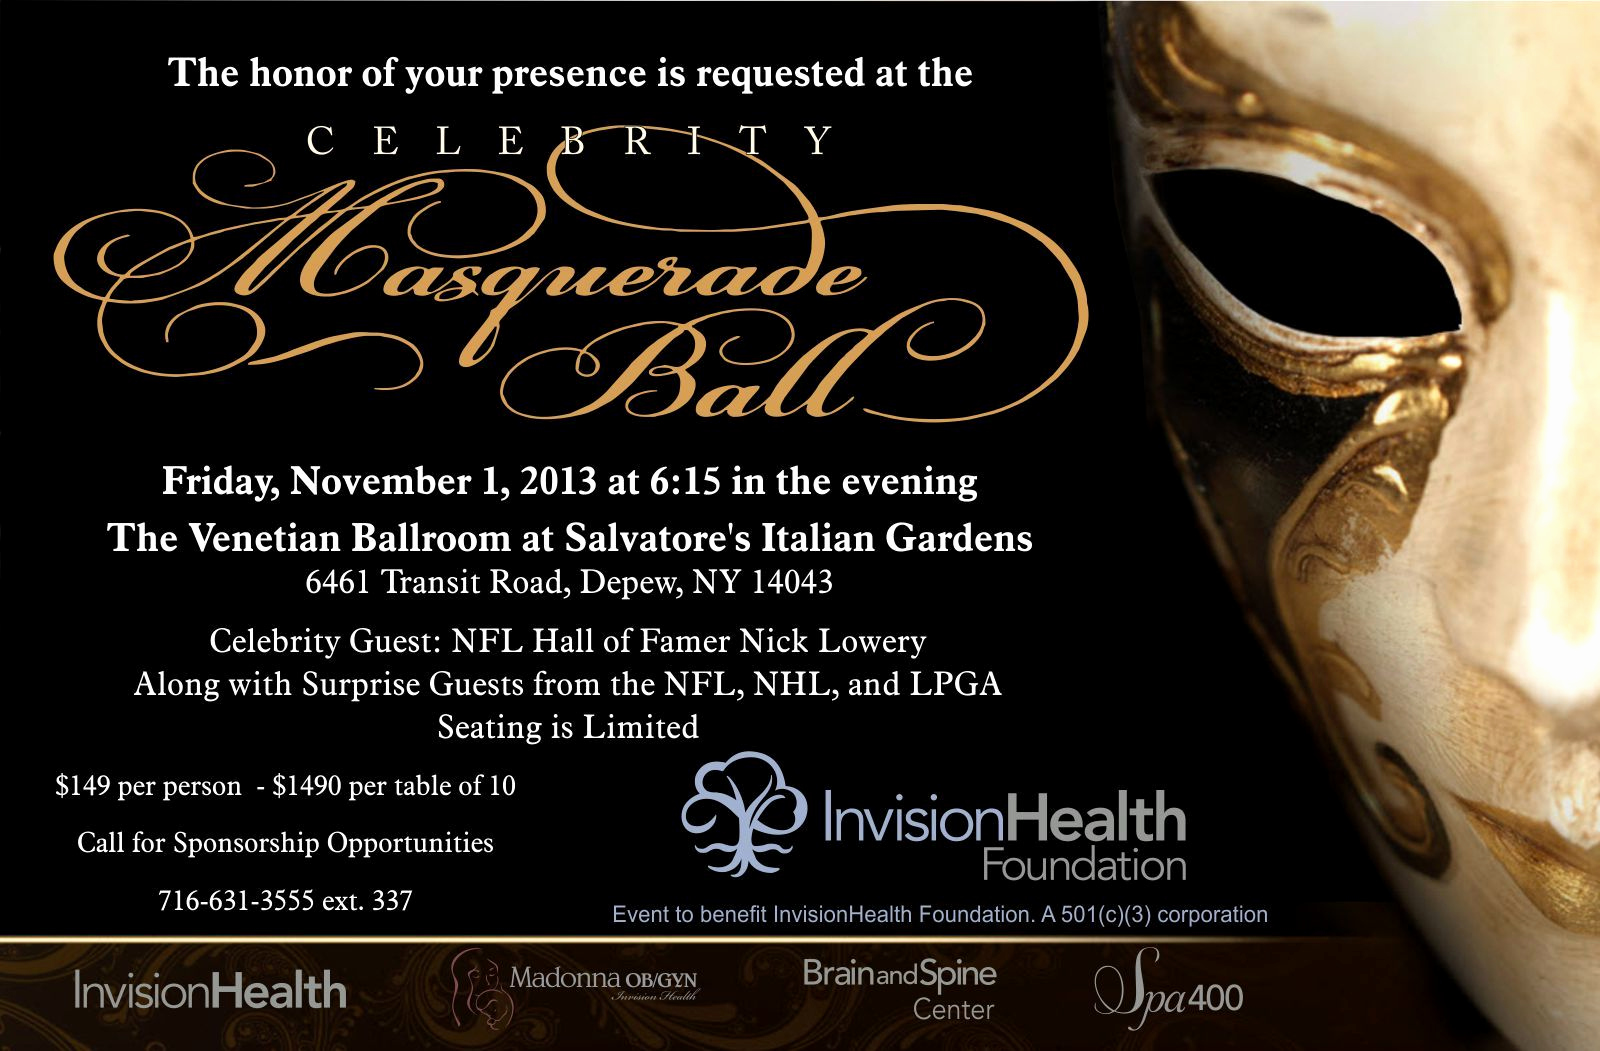 Masquerade Ball Invitation Wording Beautiful for Blank Masquerade Ball Invitations